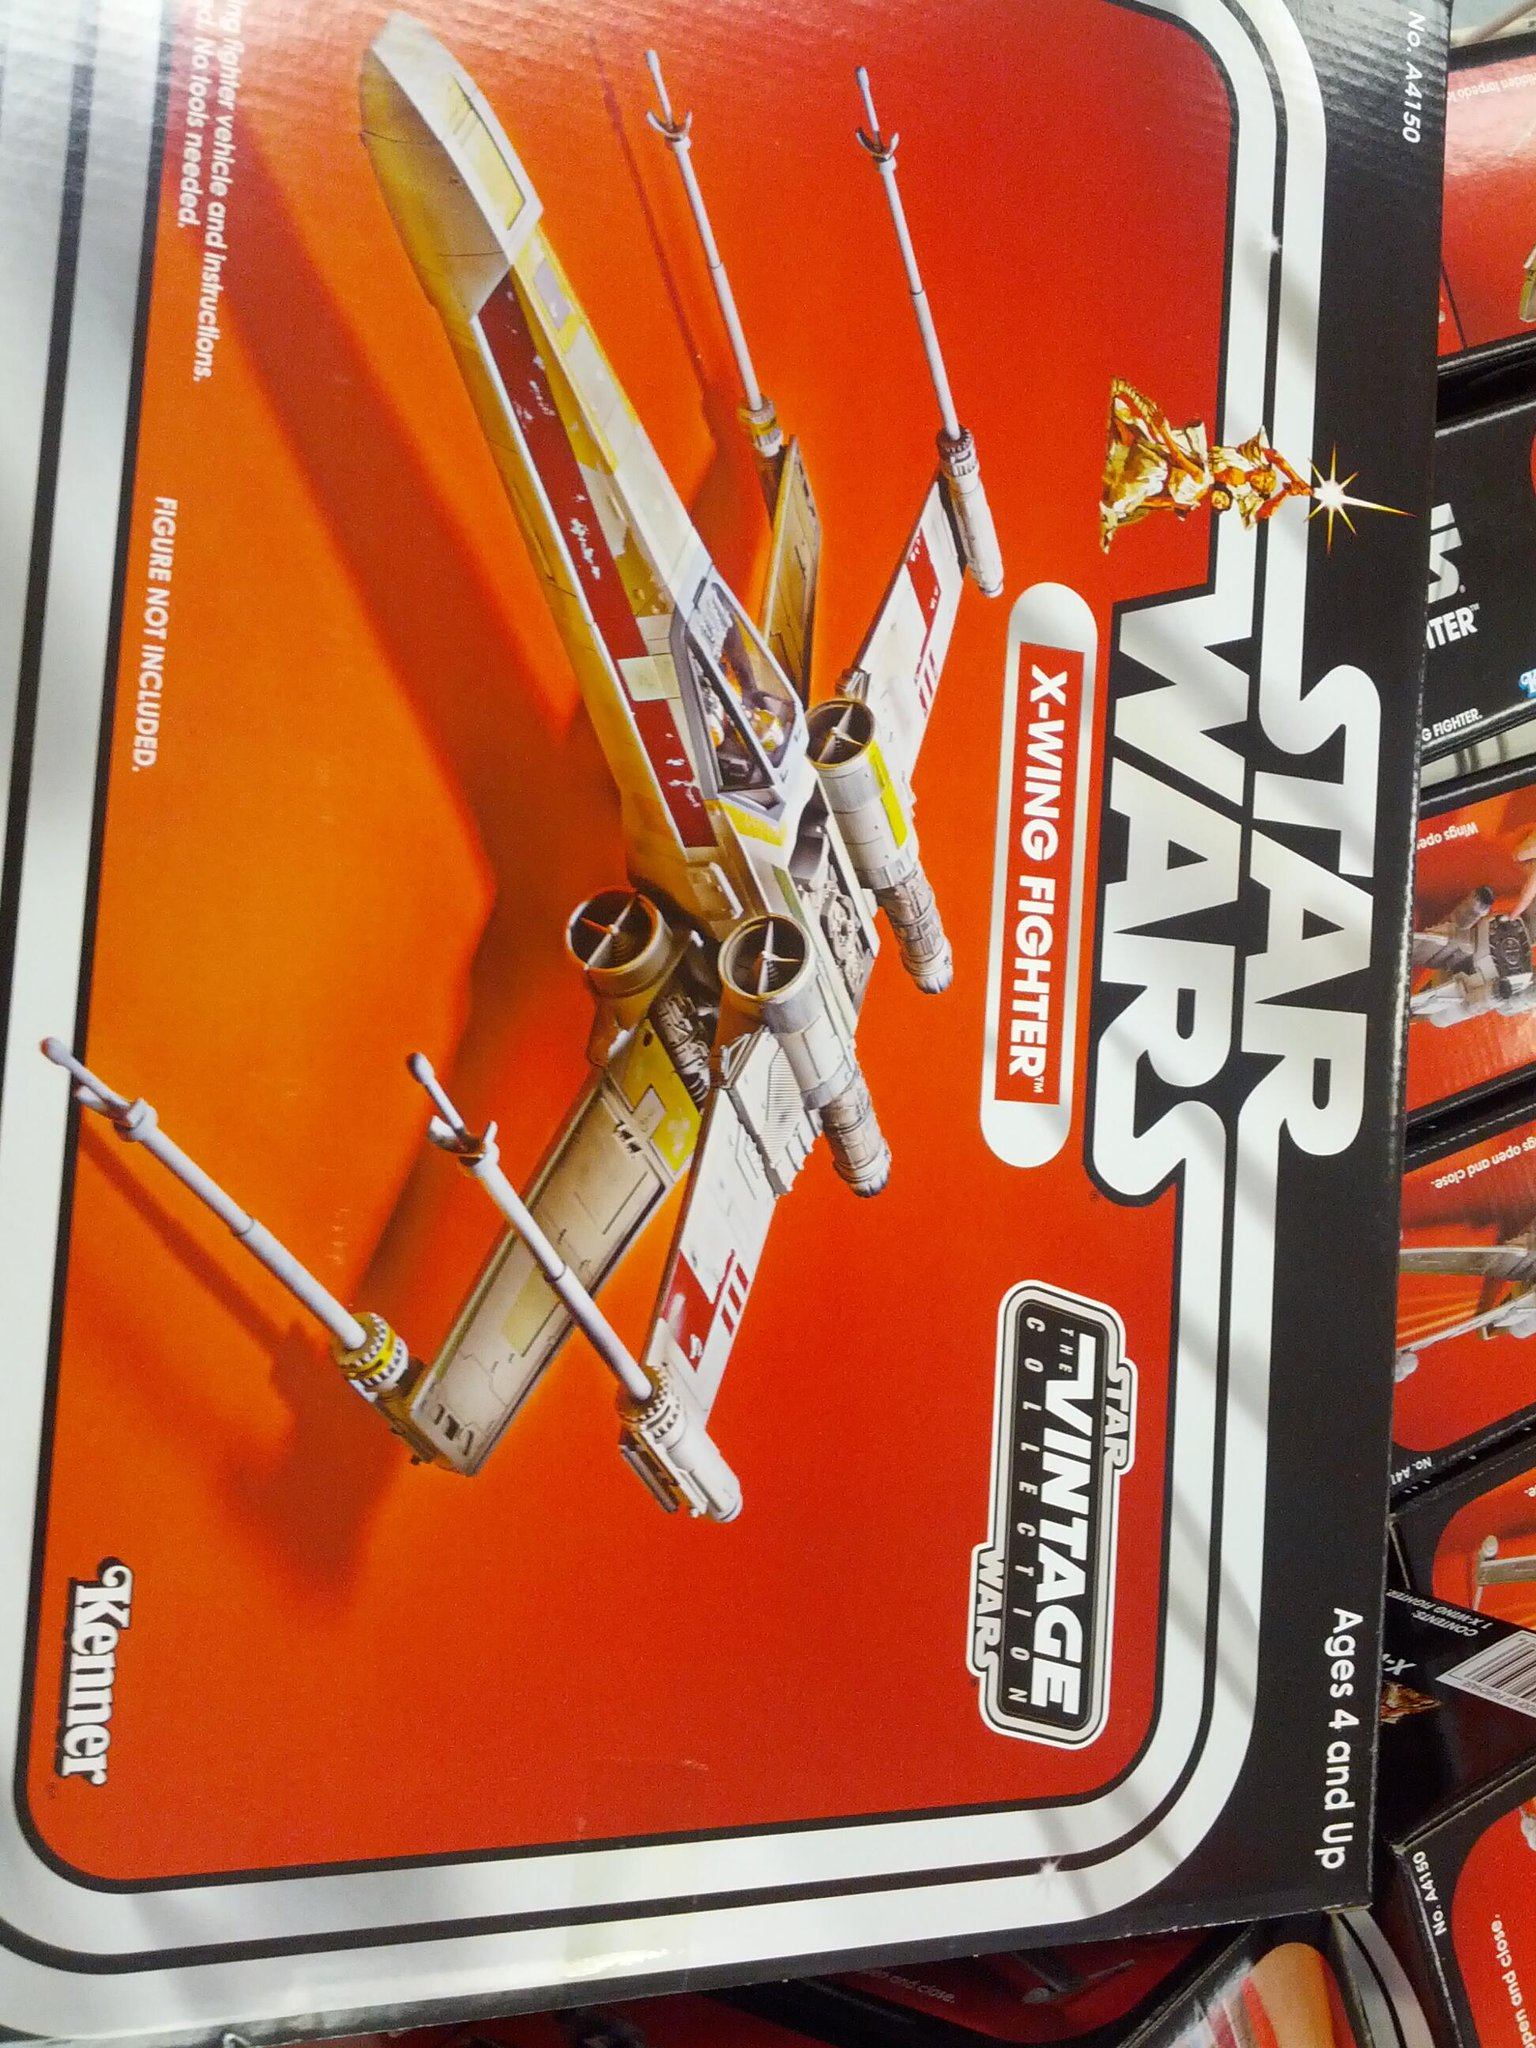 OMG the Star Wars Vintage collection exists. I suddenly have a Christmas list. http://t.co/sjJro3rDE3